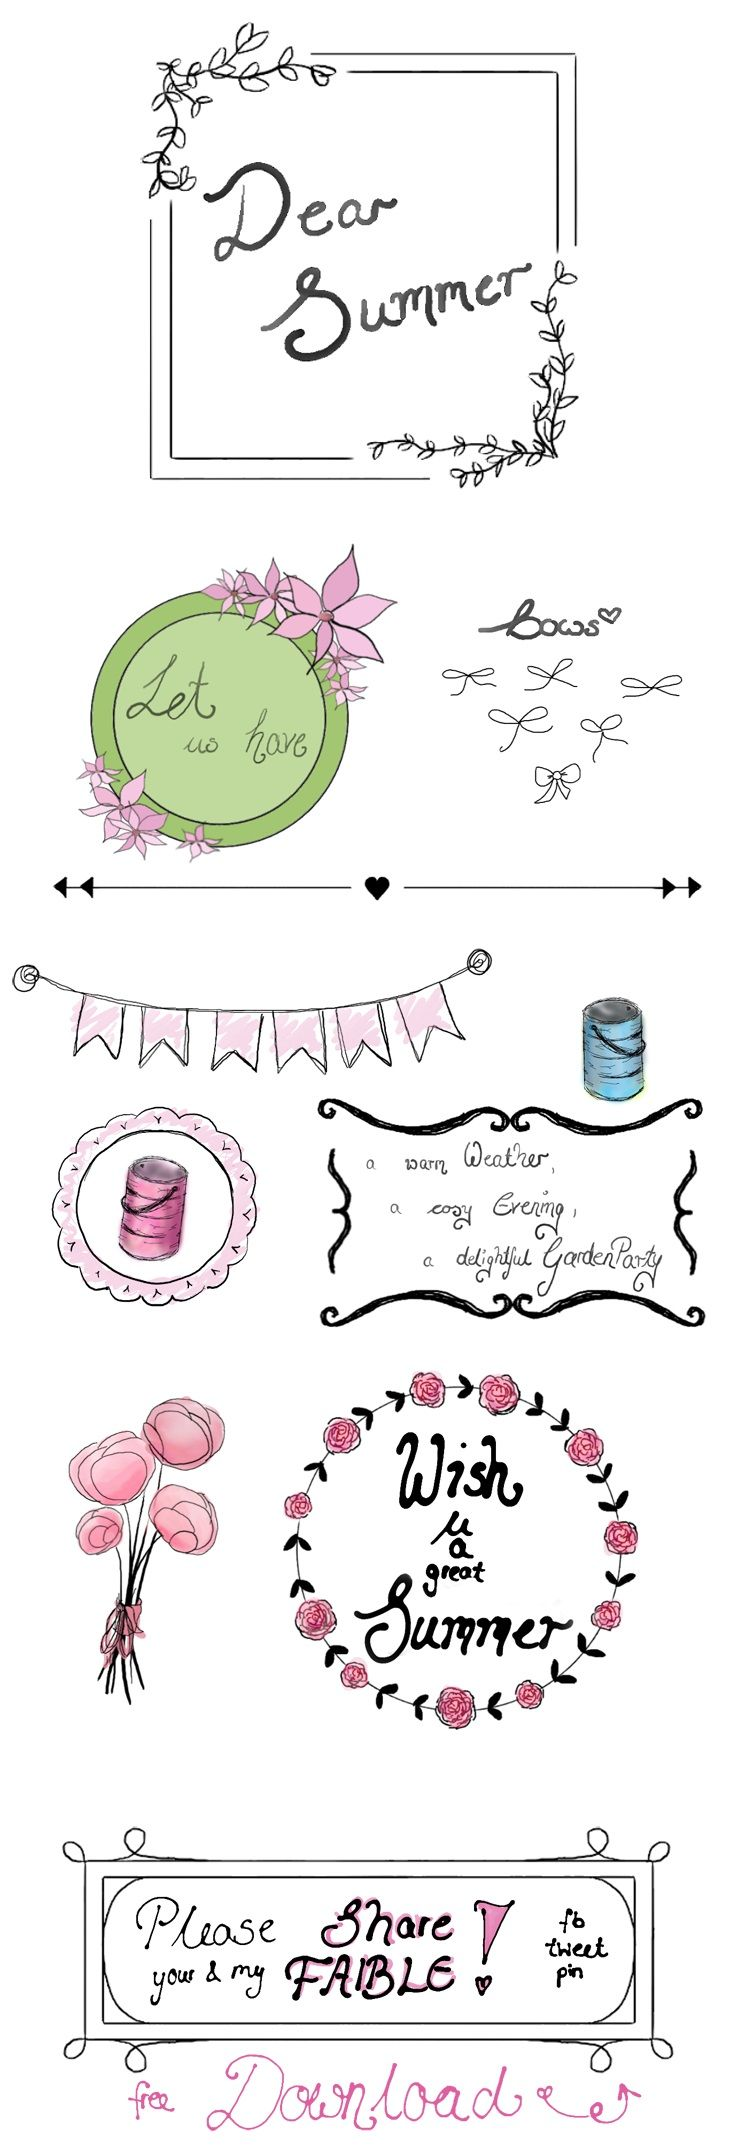 Dear Summer...  {Freebies - Part 2} - free Illustrations, Frames, Wreaths for Summer! My new Graphics -> download on FAIBLE!